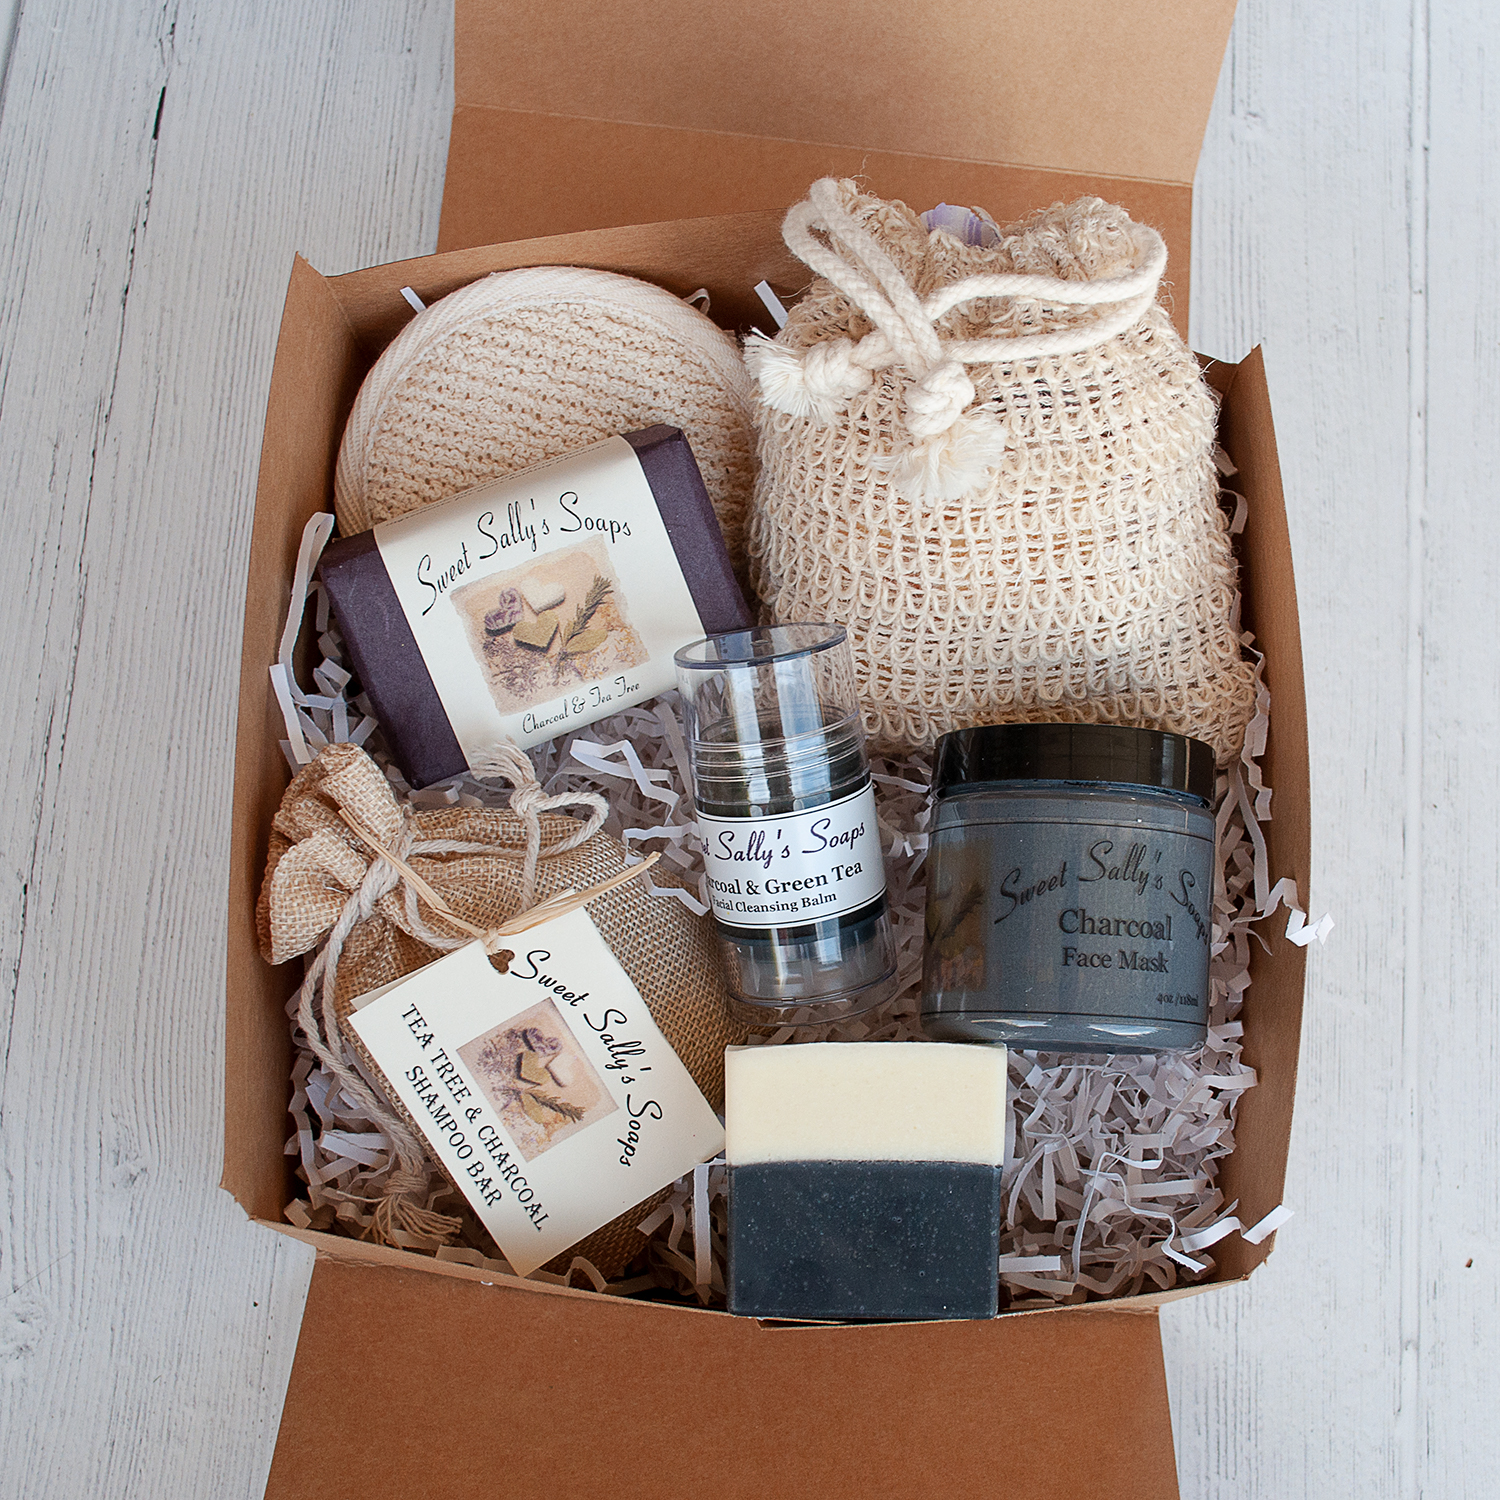 Charcoal Self-Care Gift Set